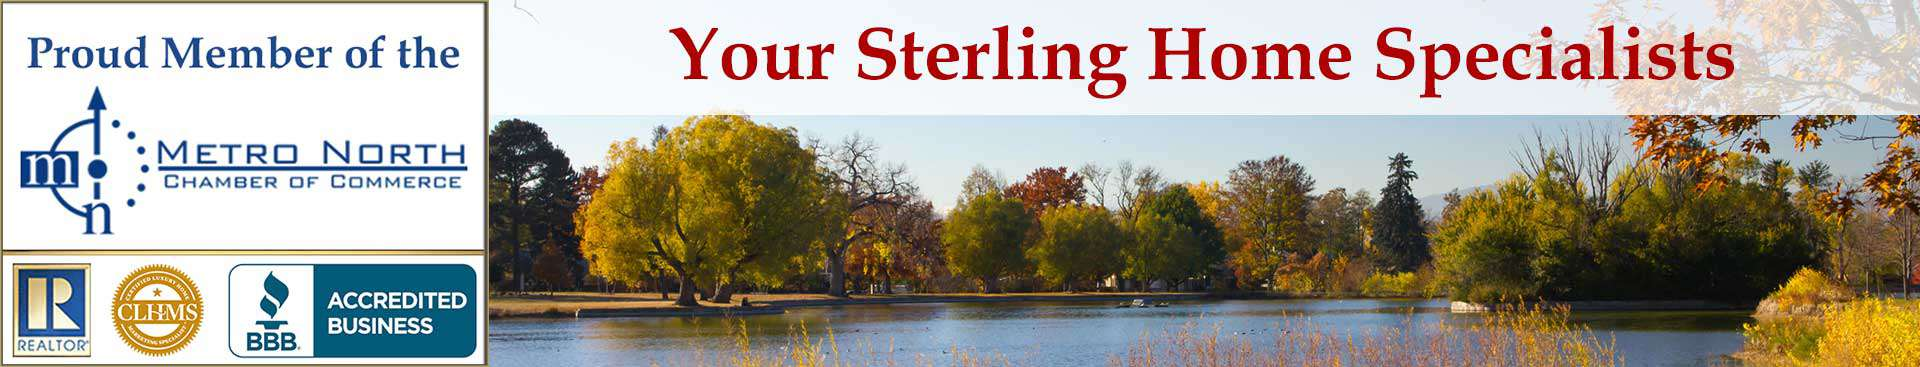 Sterling Accreditations Banner